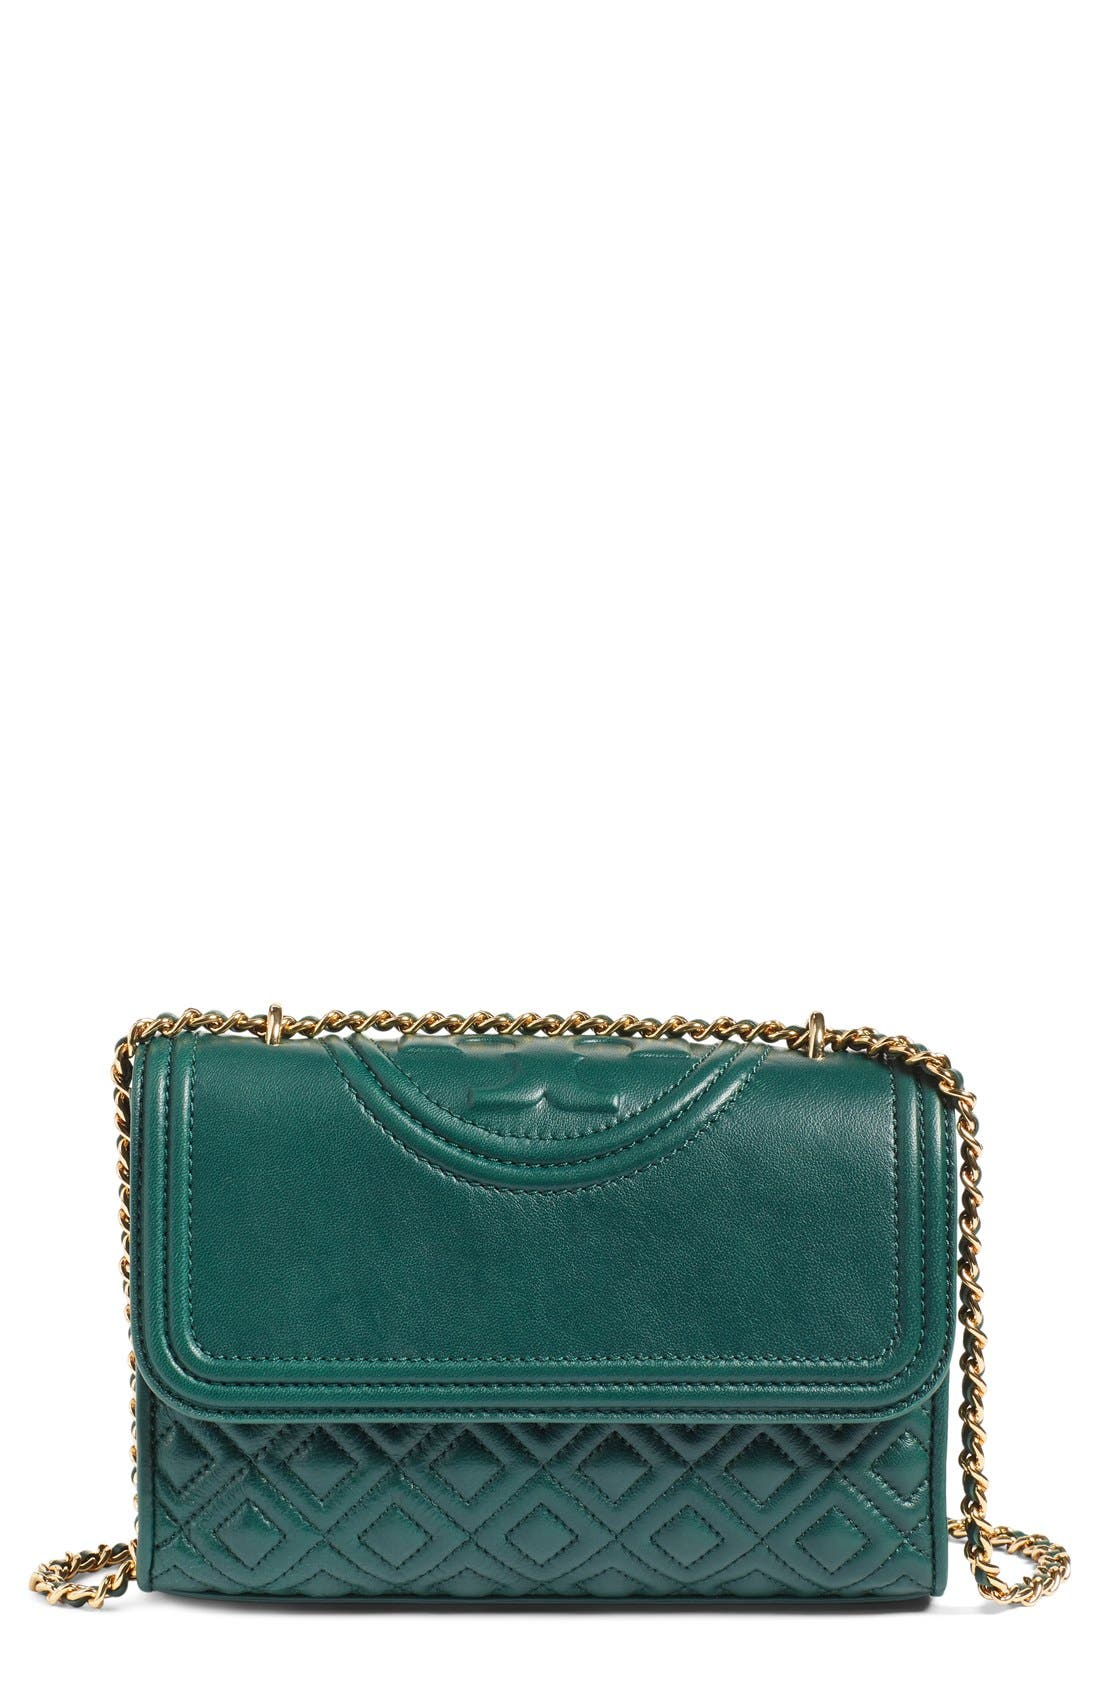 Main Image - Tory Burch 'Small Fleming' Quilted Leather Shoulder Bag